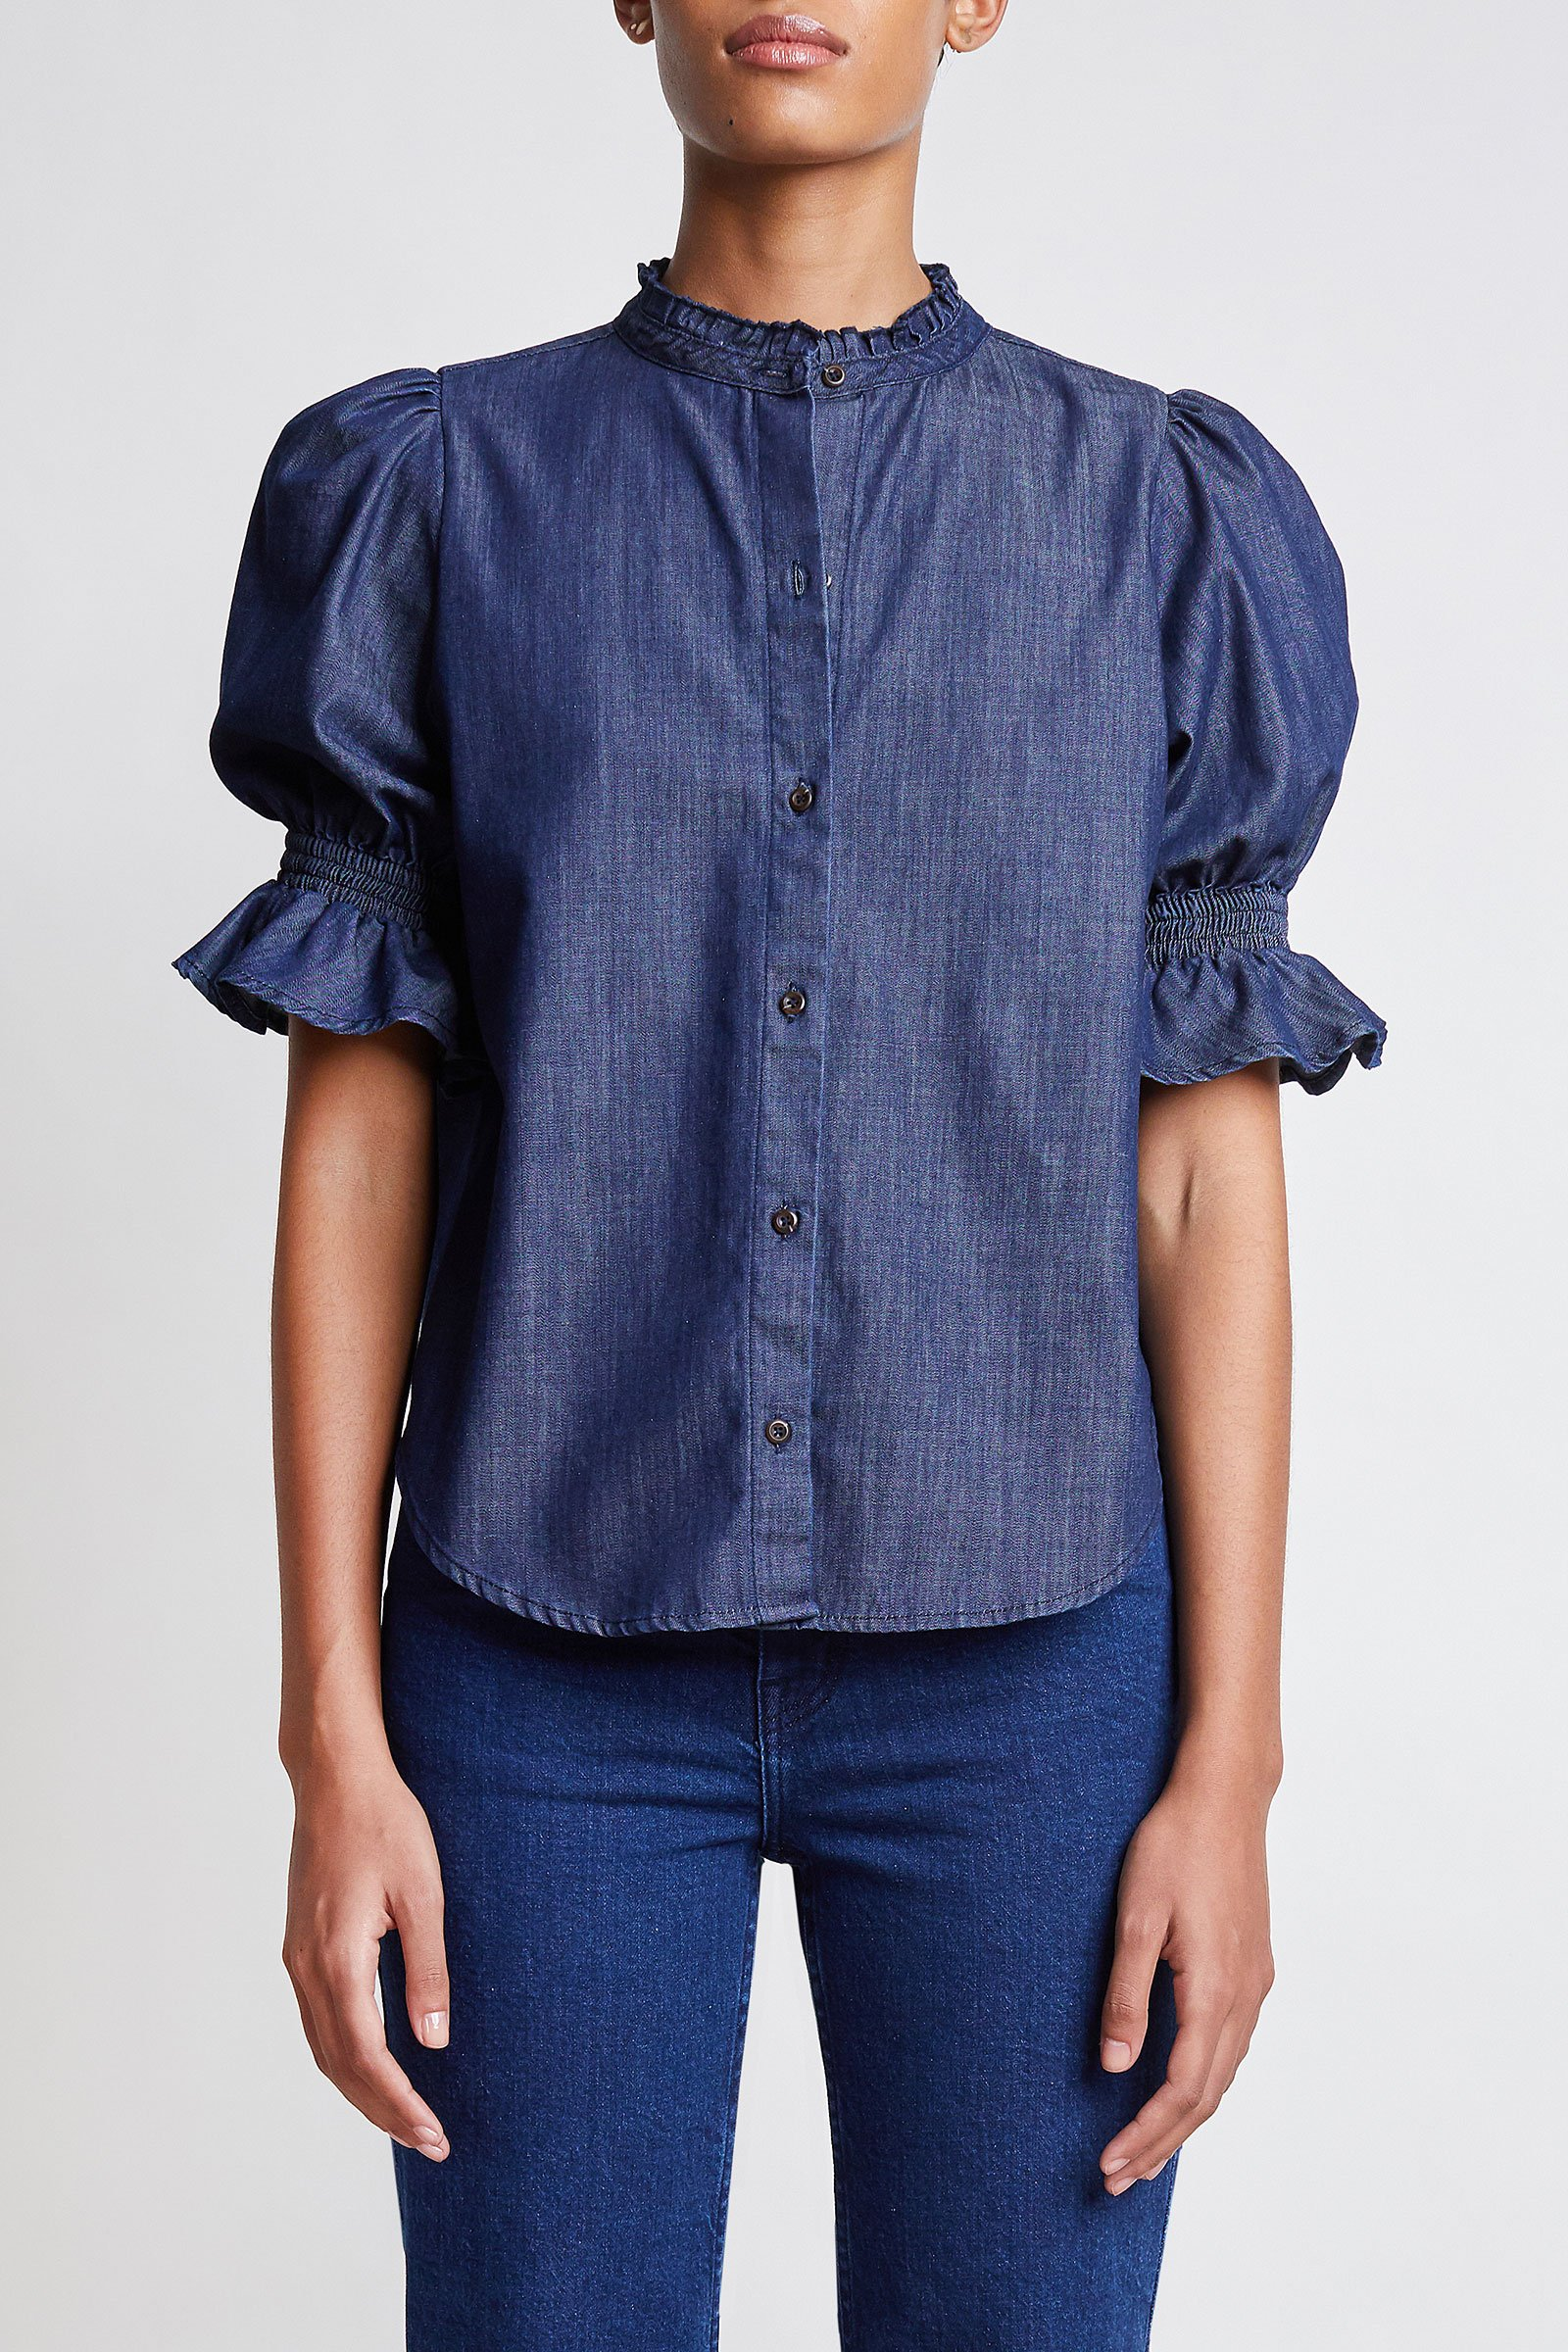 apiece apart denim shirt